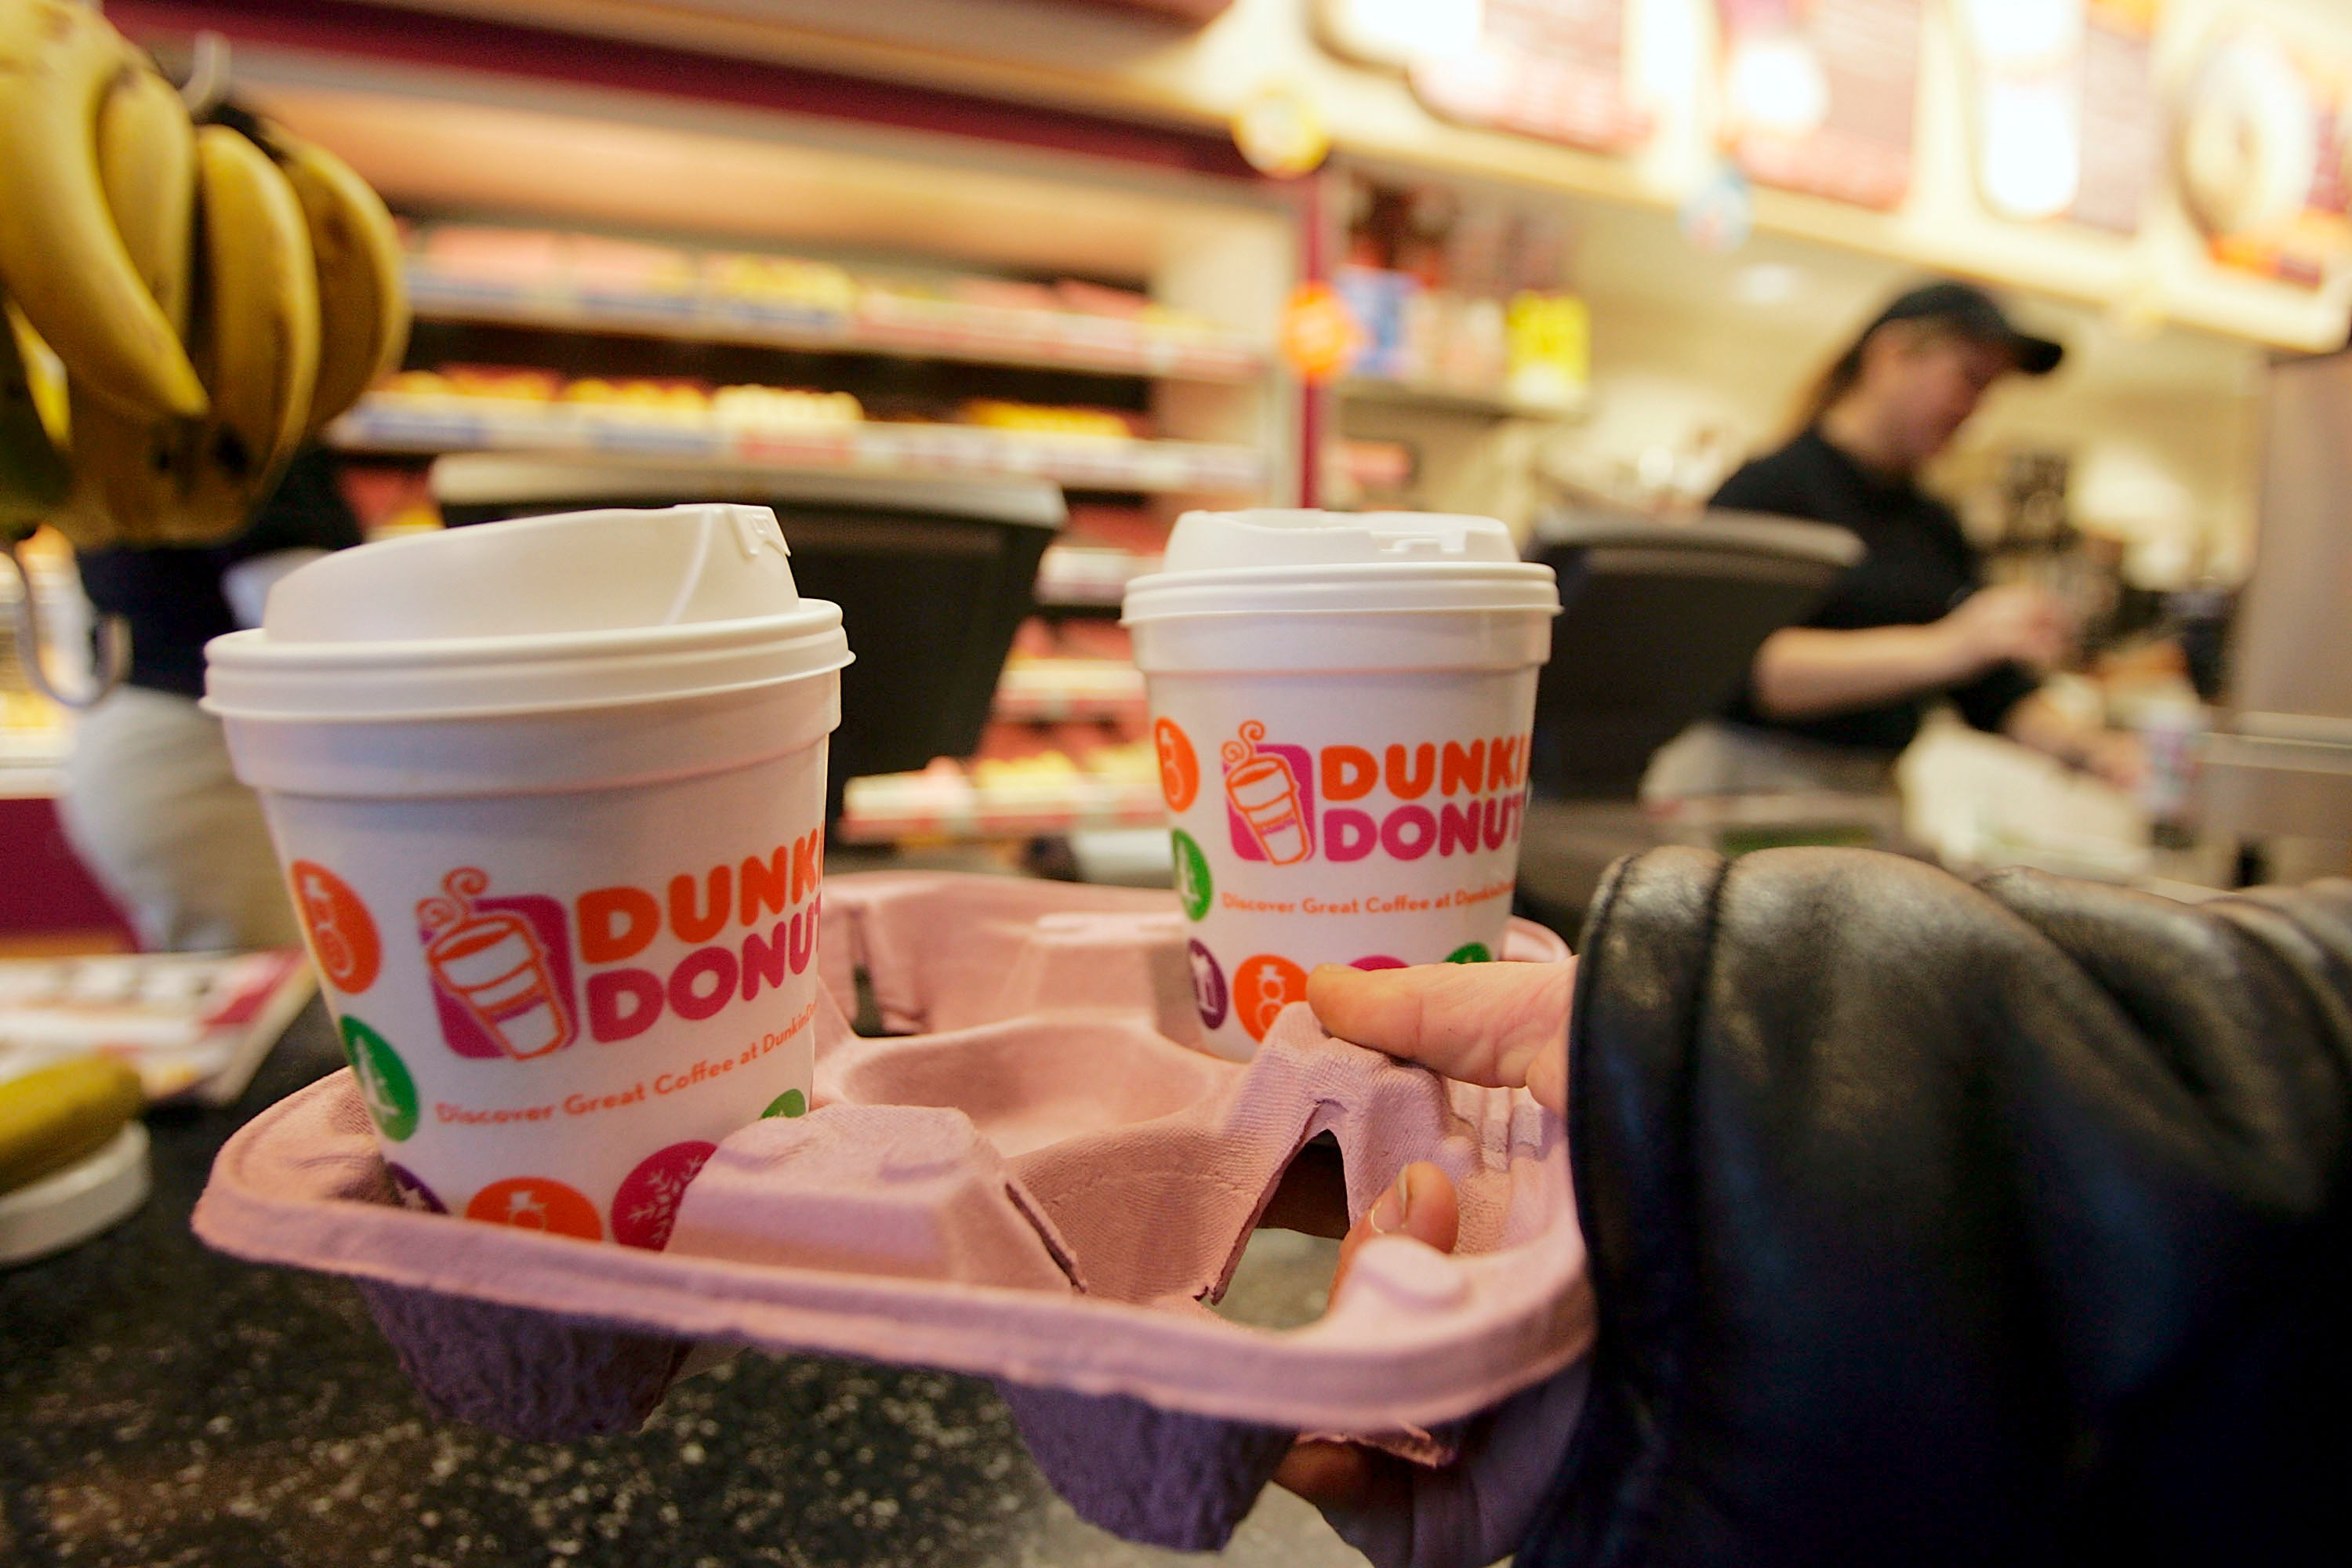 Dunkin' Donuts hints at possible on-demand food delivery test.